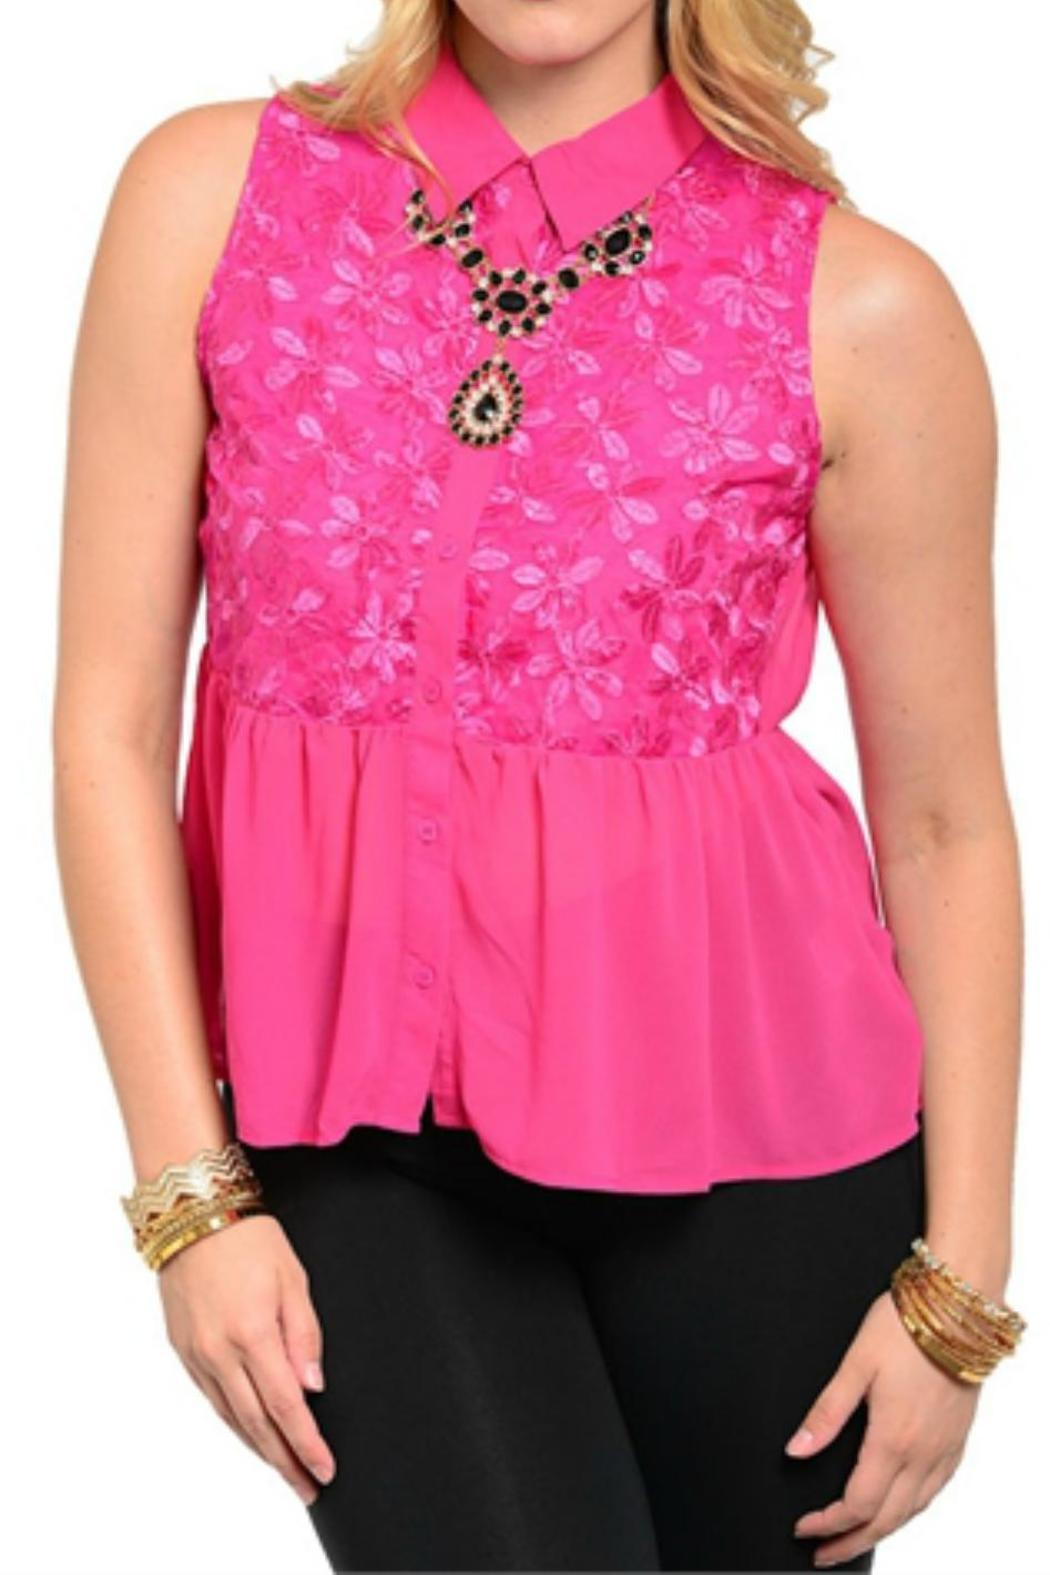 Bellezza Boutique Plus-Sized Pink Chiffon Top - Main Image